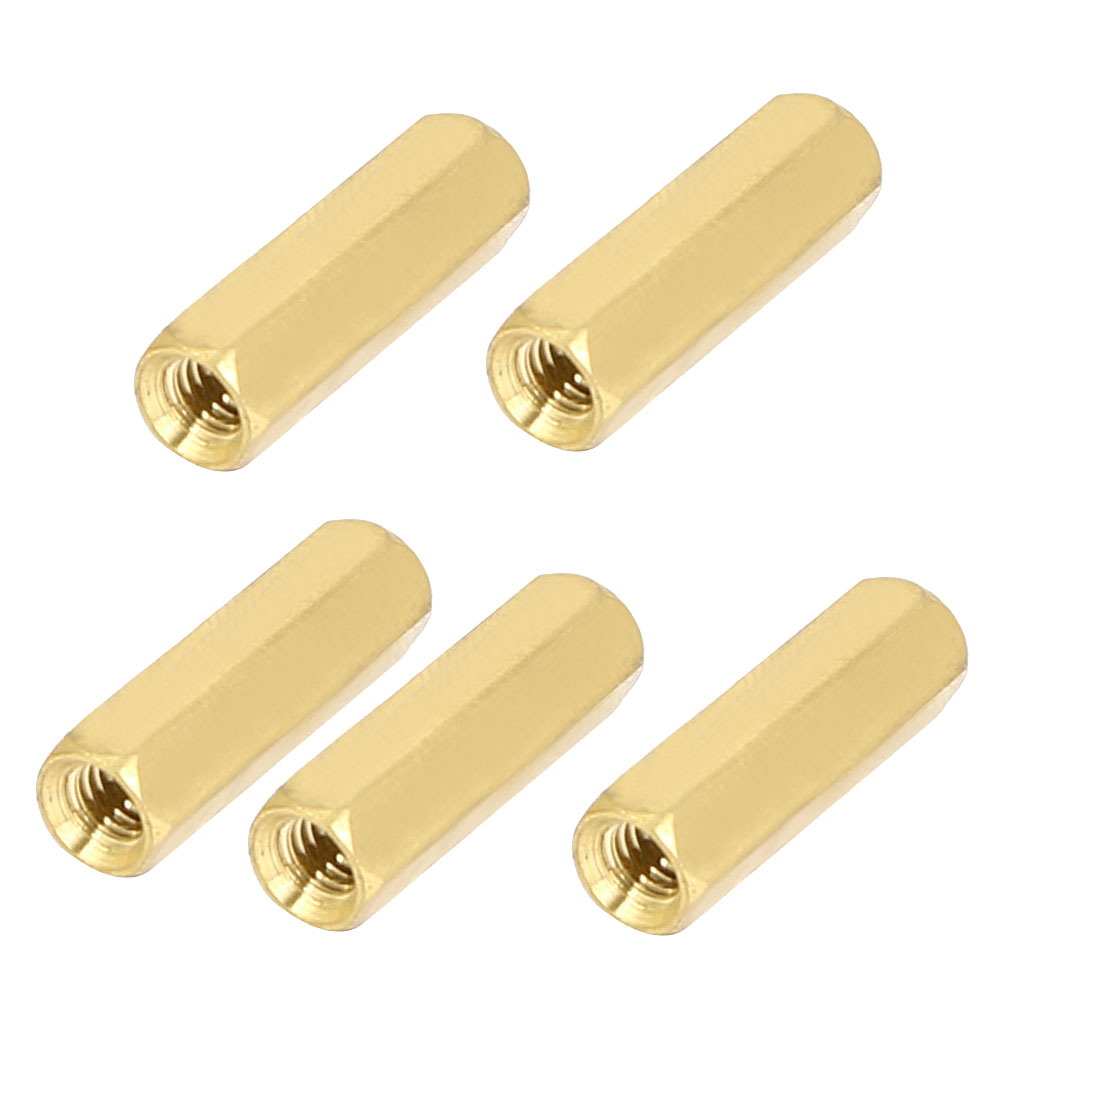 M4x20mm Brass Hex Hexagonal Female Thread PCB Standoff Spacer 5pcs